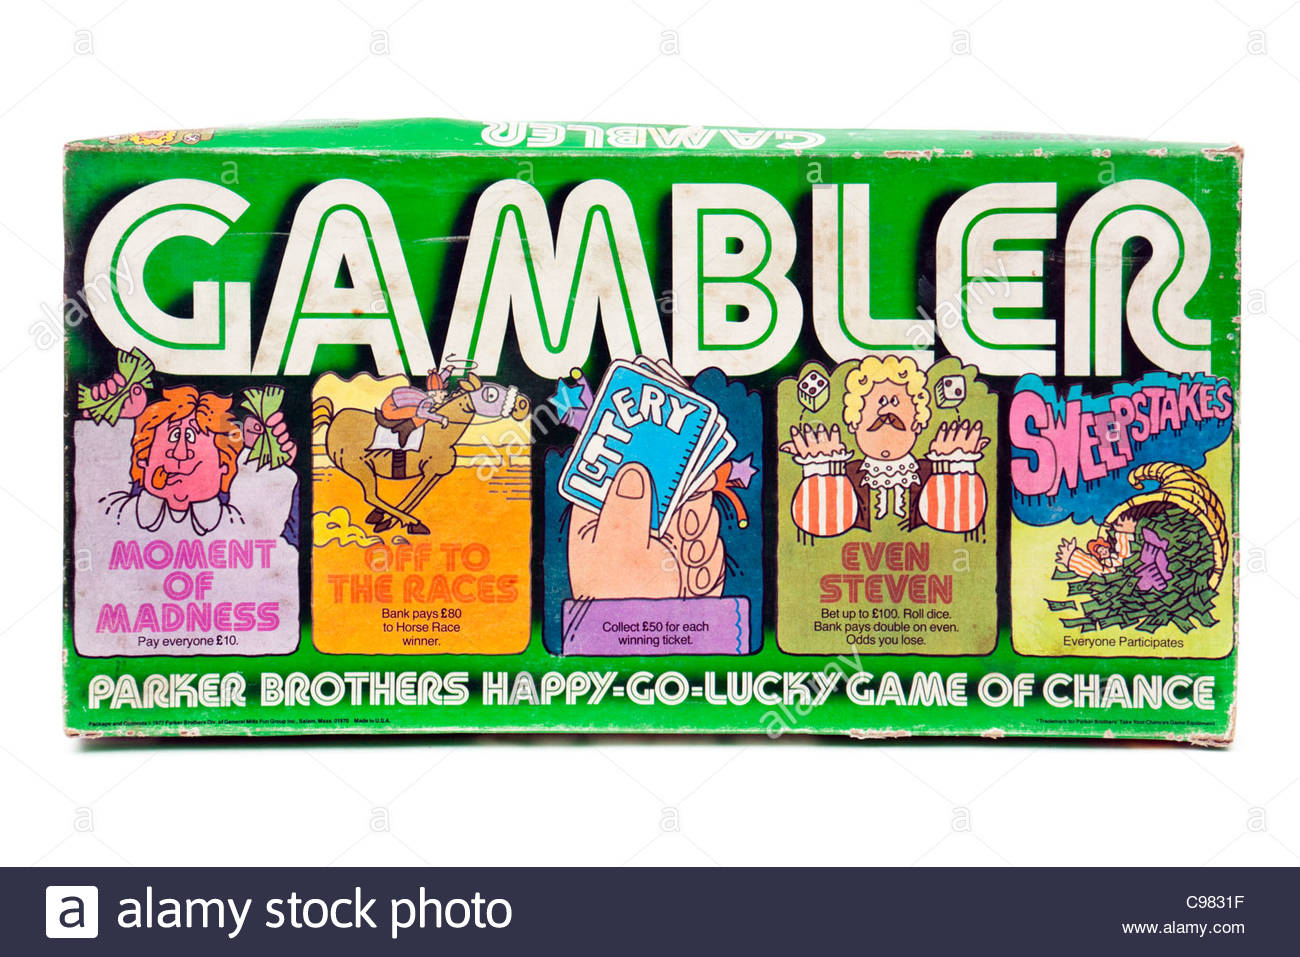 Vintage 1977 'Gambler' board game by Parker Brothers (USA) - Stock Image